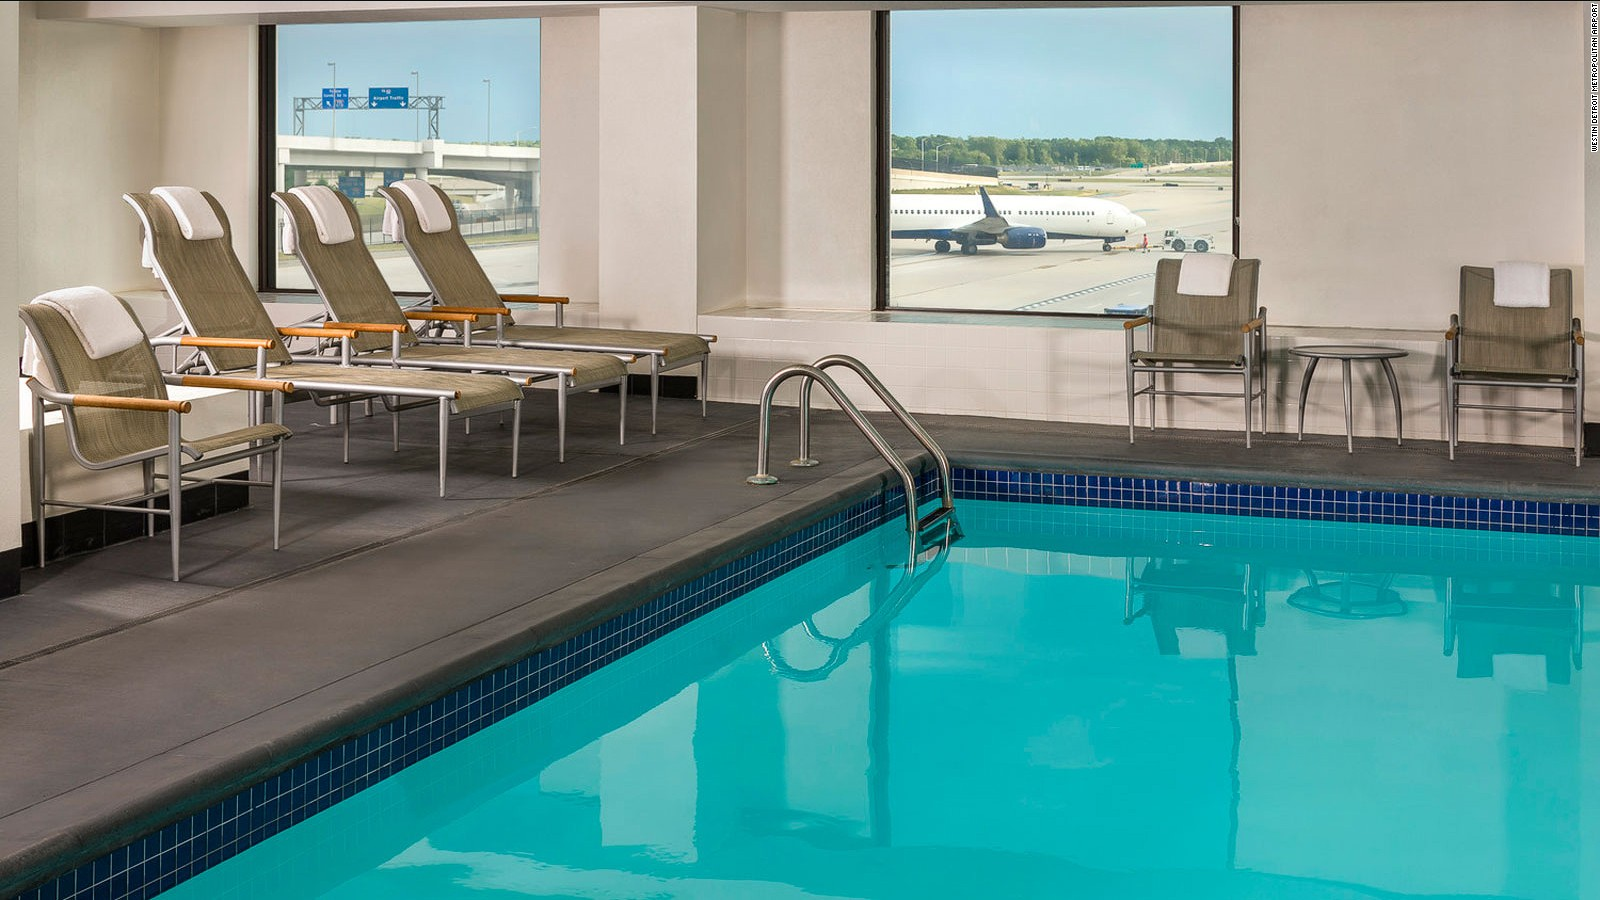 Airport swimming pools: 8 of the world\'s best | CNN Travel